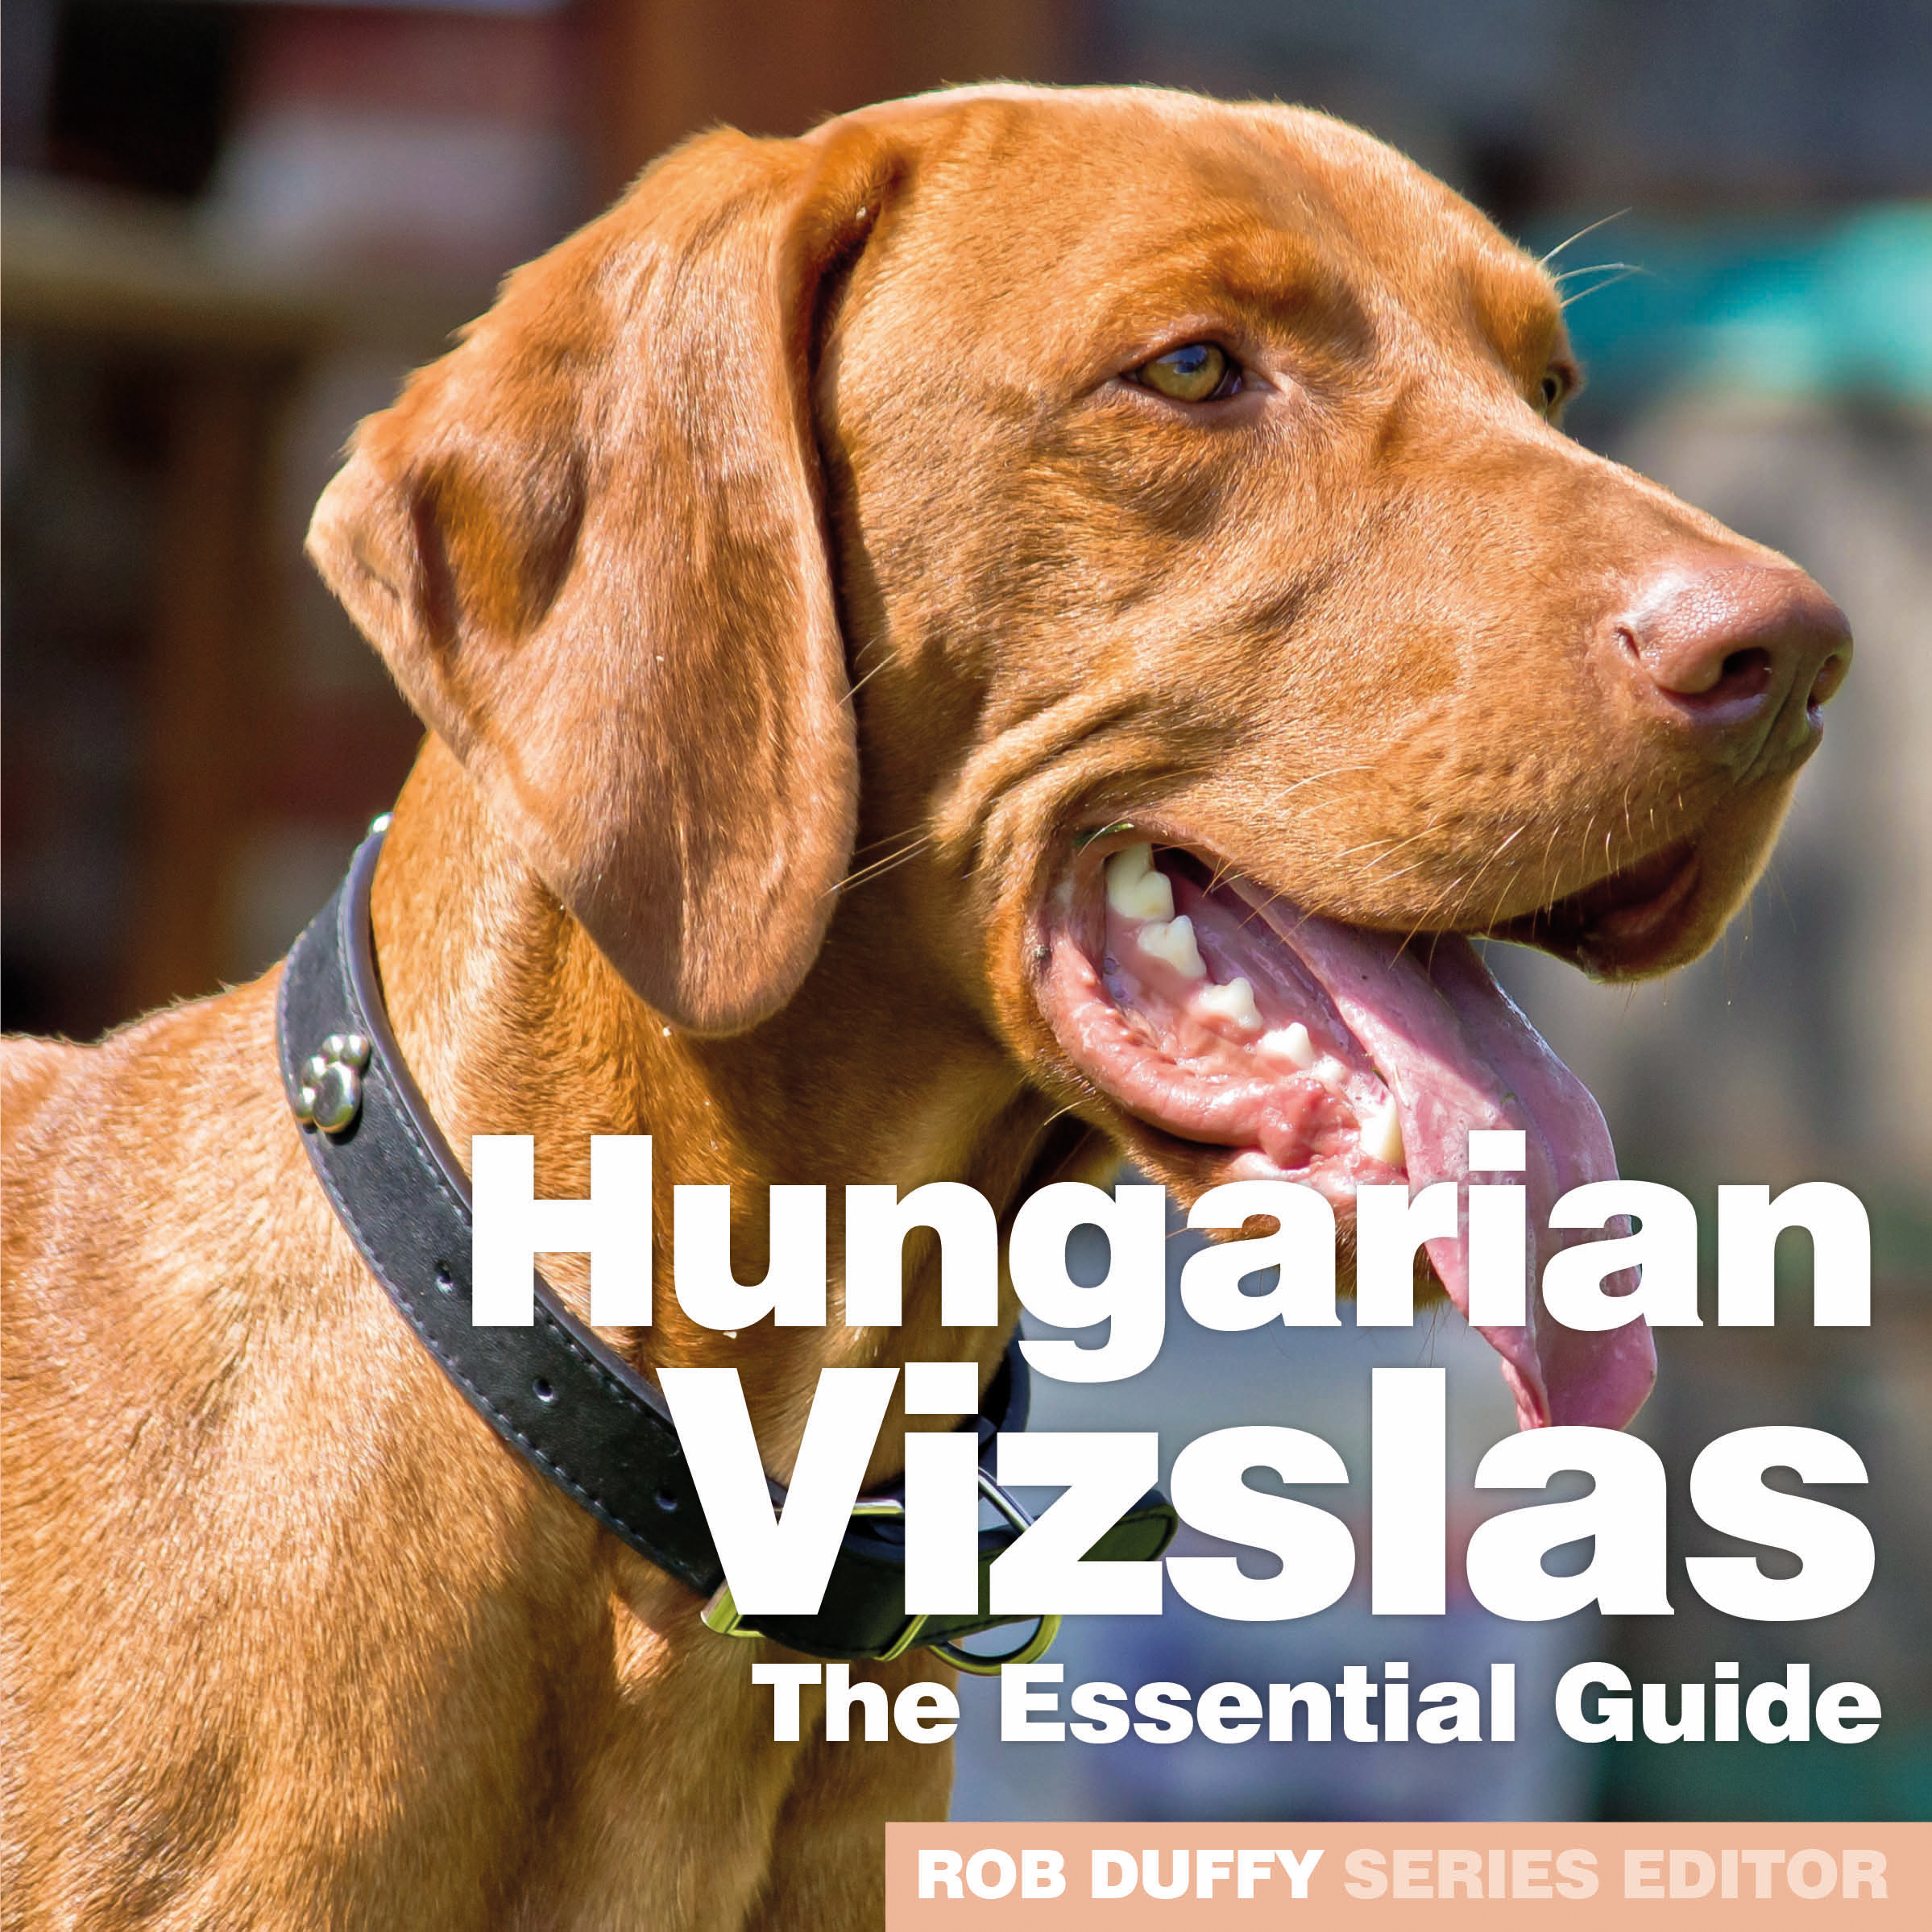 Hungarian Vizslas The Essential Guide